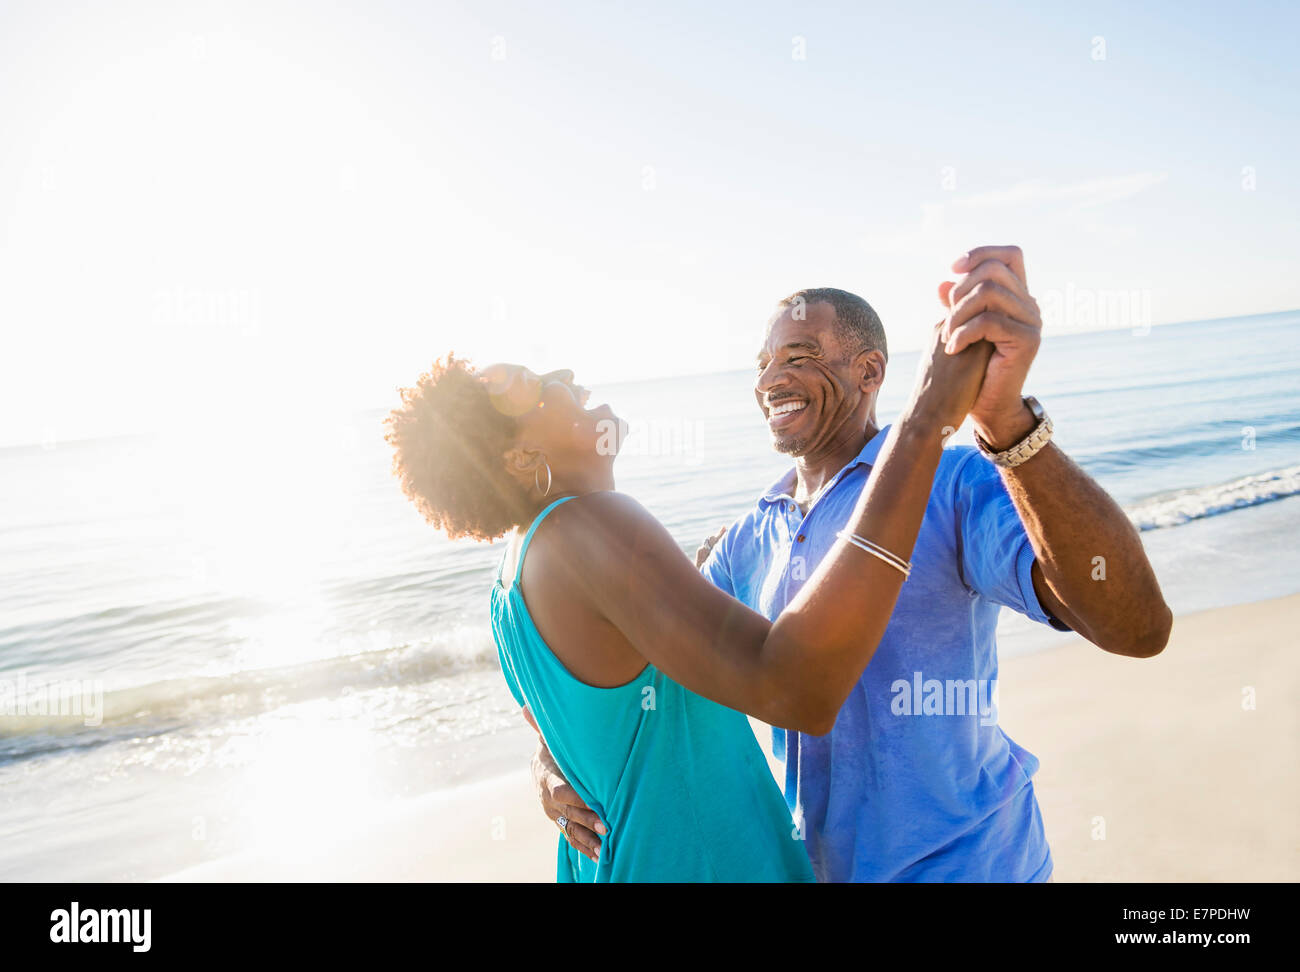 Mature couple dancing on beach Photo Stock